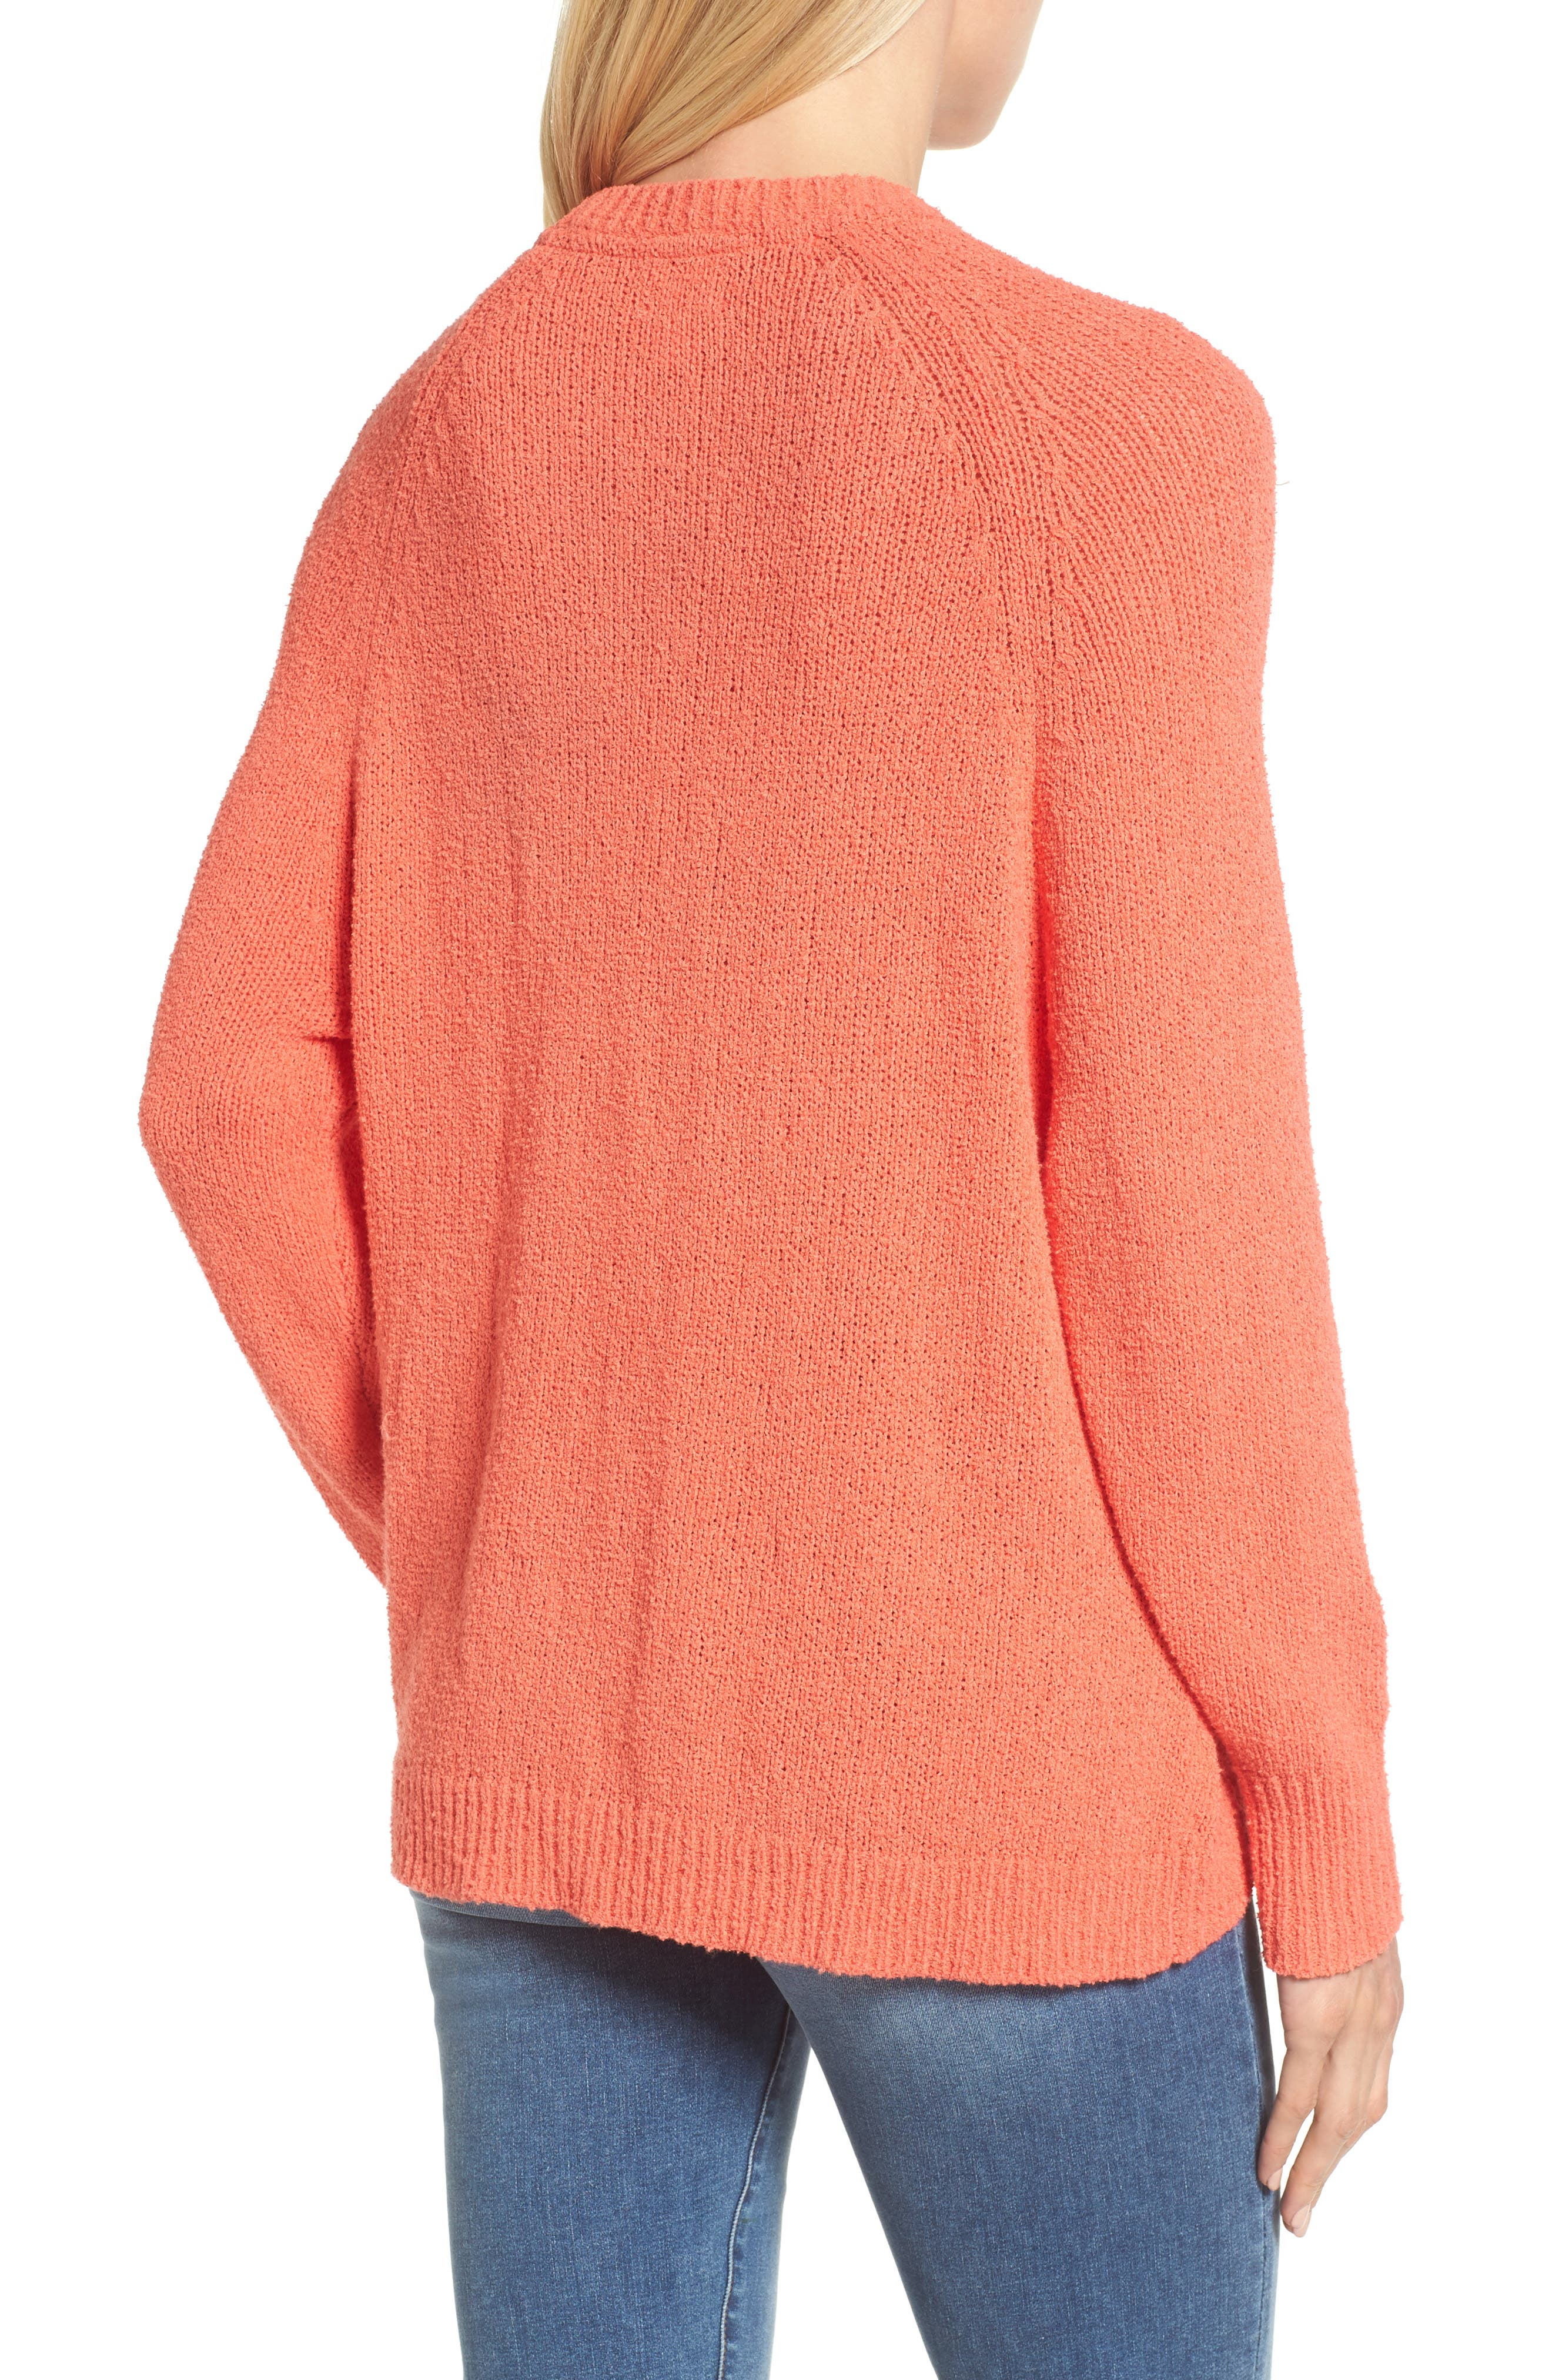 Relaxed Crewneck Sweater,                             Alternate thumbnail 2, color,                             Coral Sea